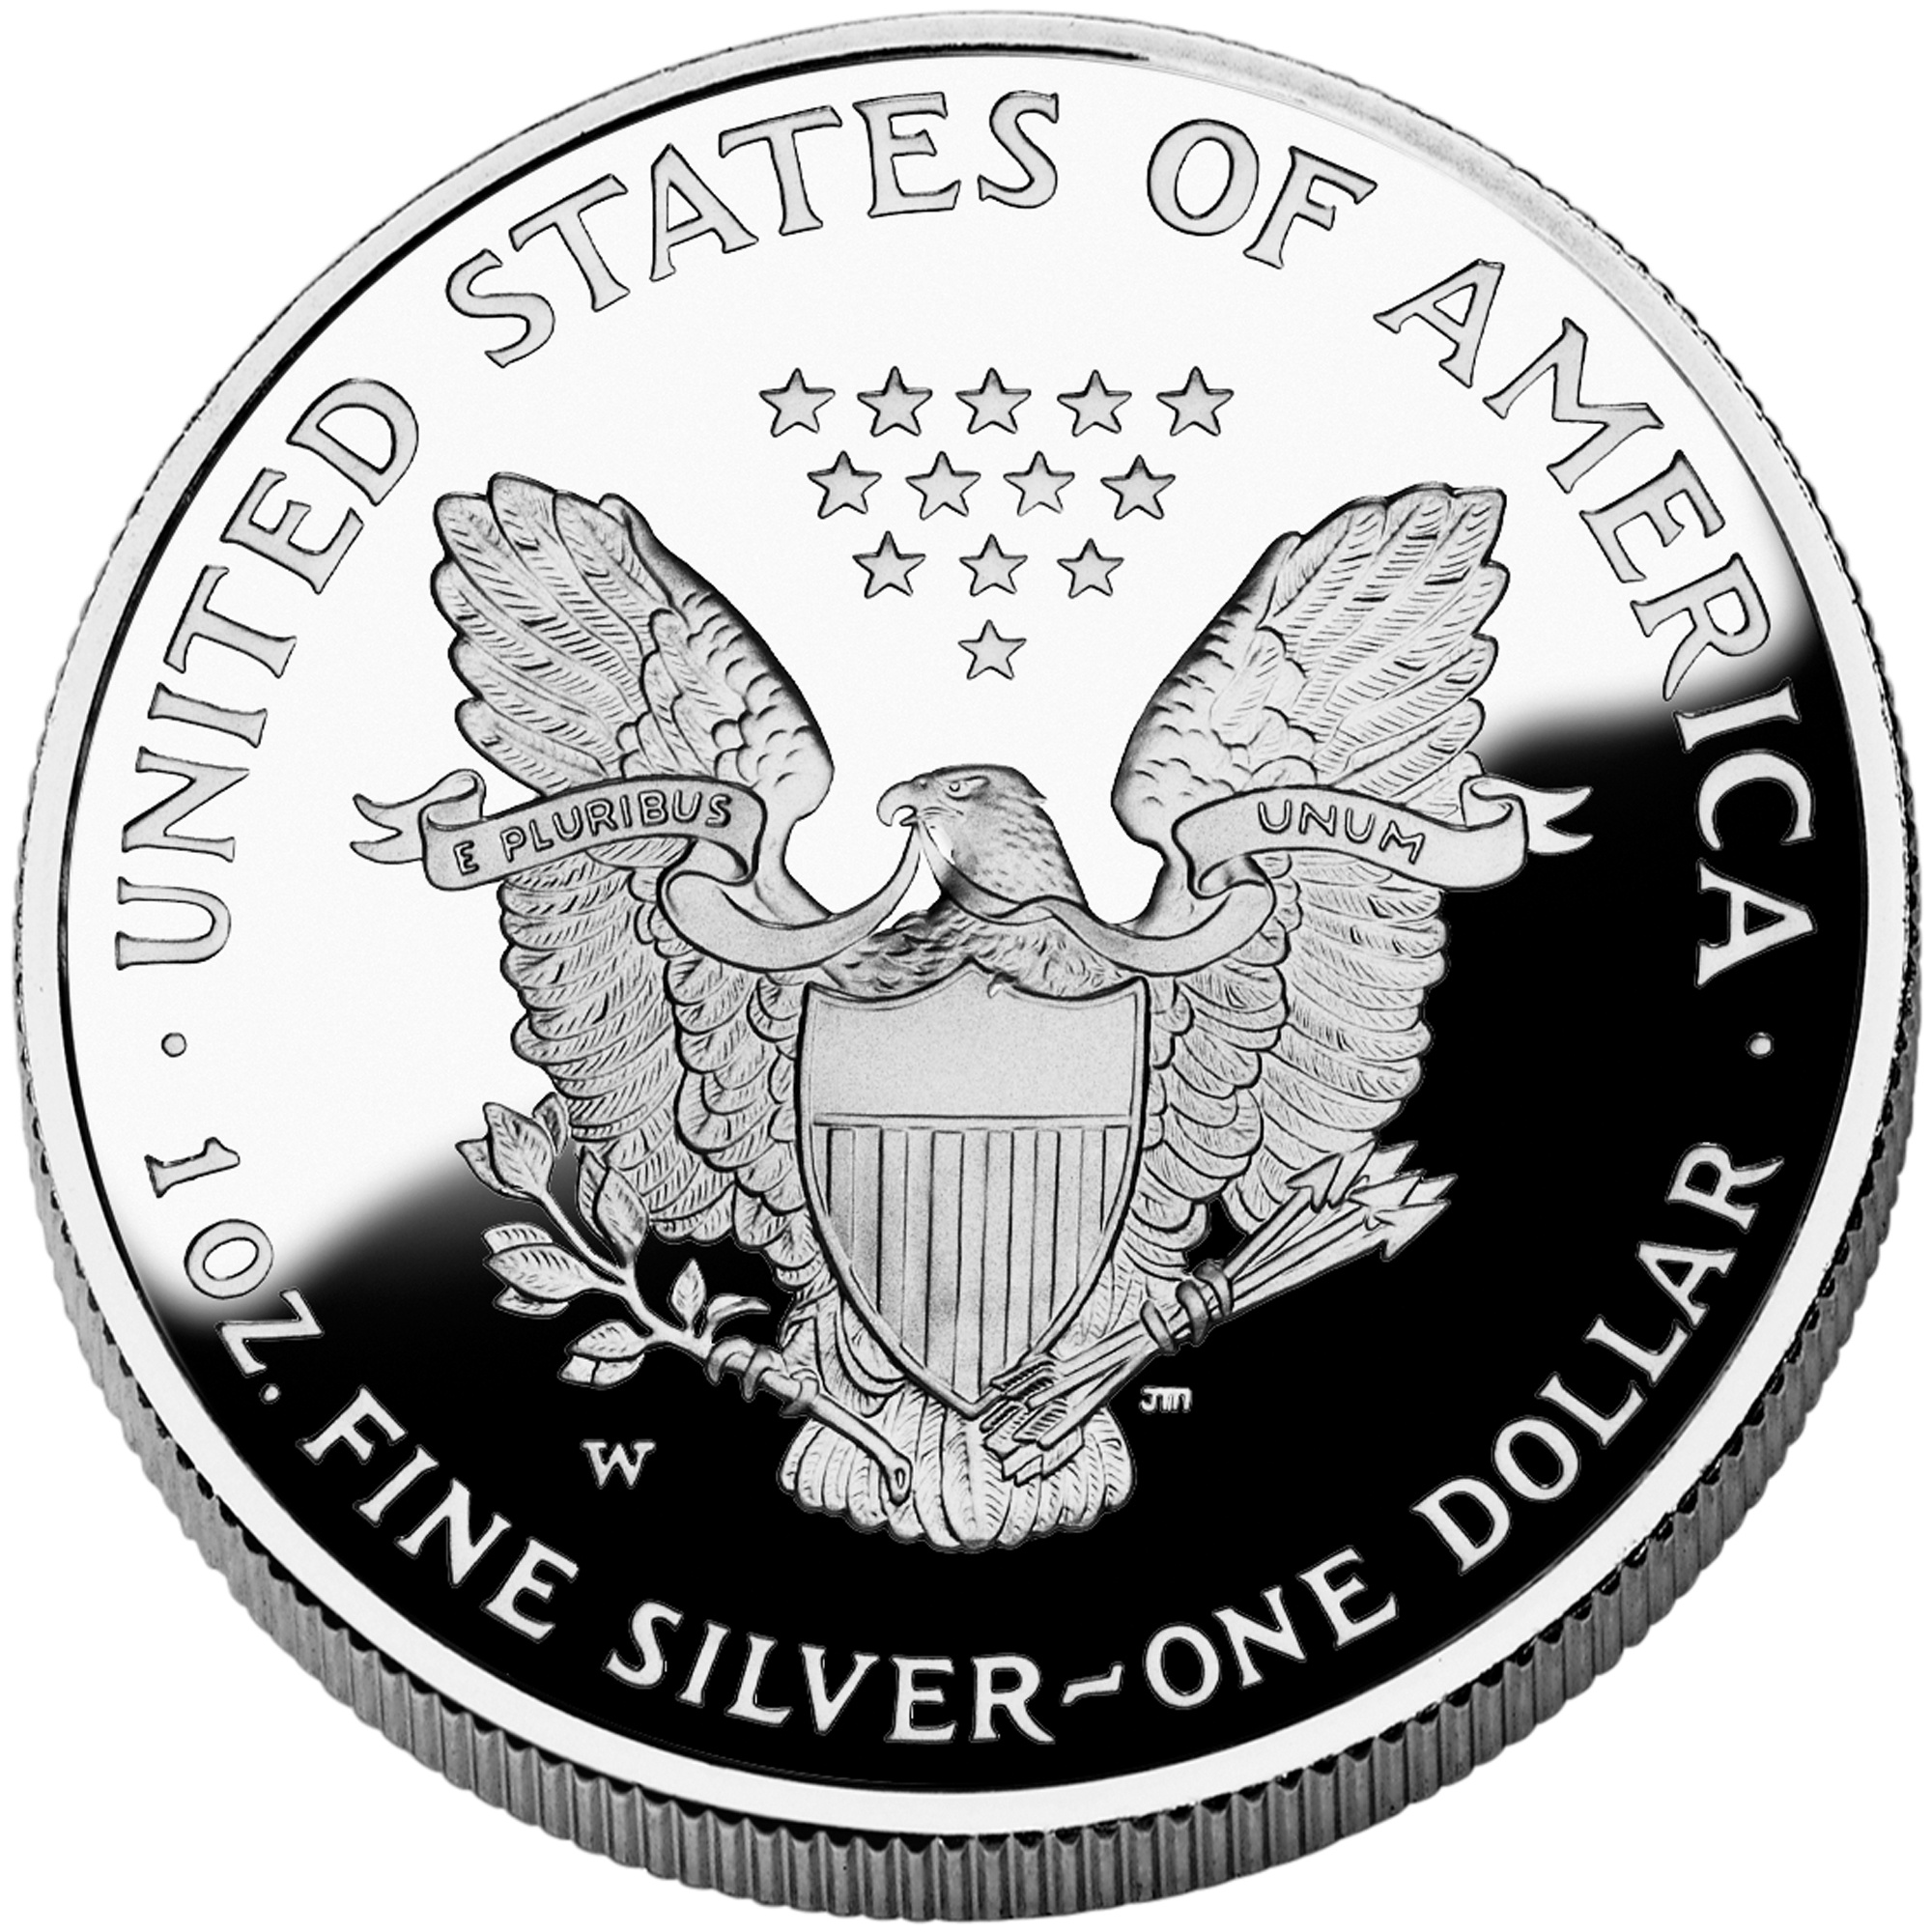 Sterling Silver per troy ounce